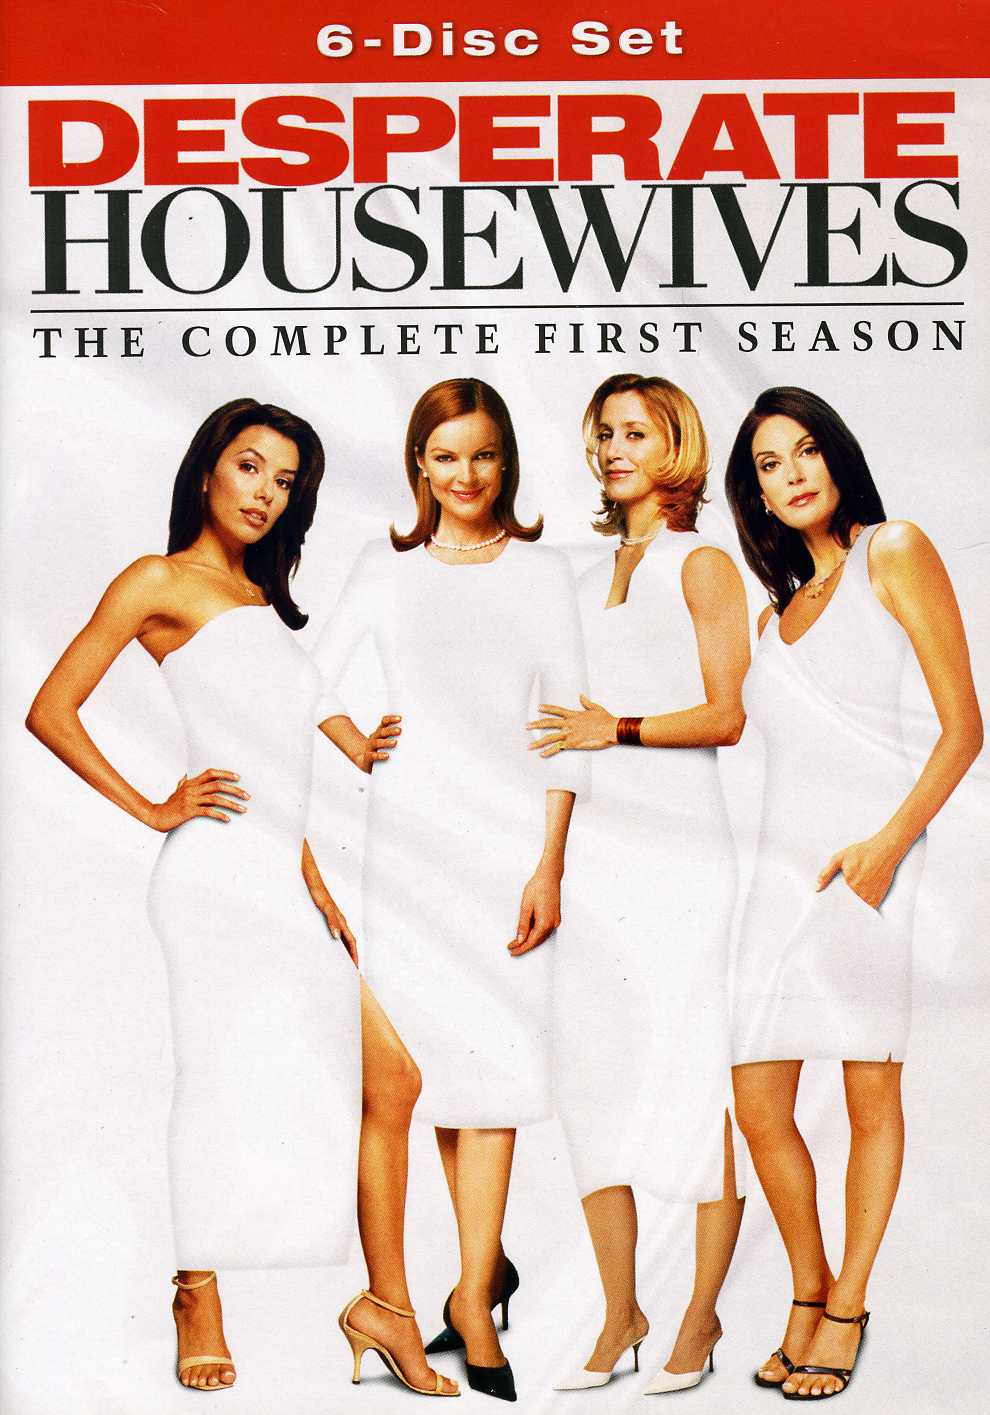 Desperate Housewives: First Season (DVD)